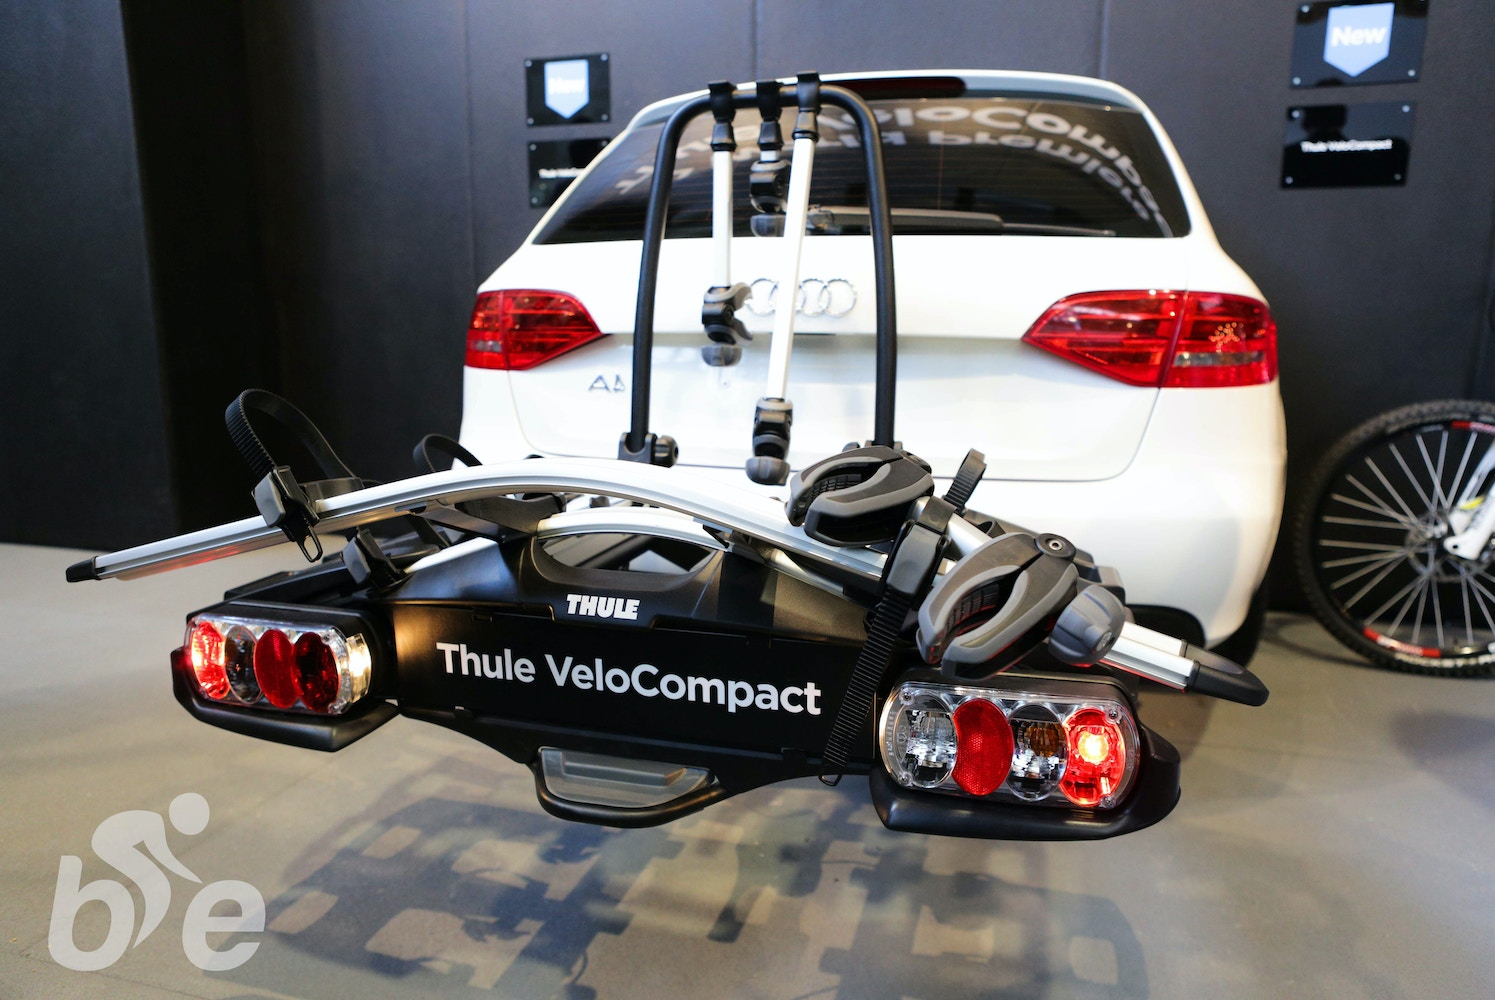 THULE's Next Gen Bike Rack - Hello Velo Compact